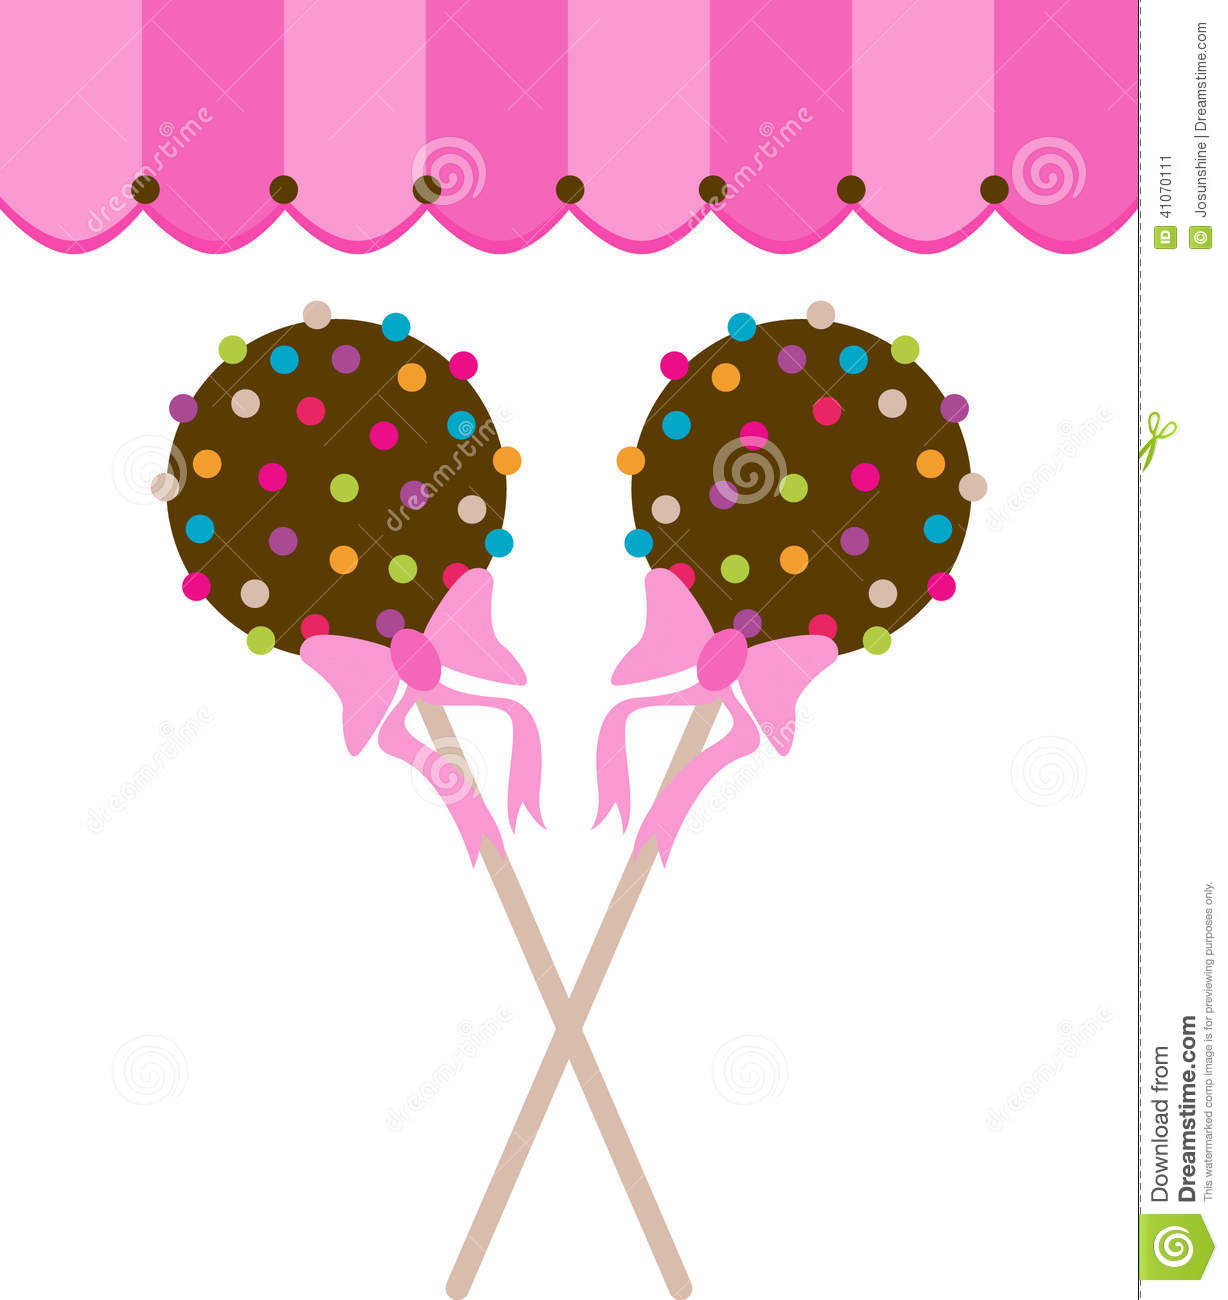 Cake Pop Clipart Free : Cake Pops With Canopy Stock Vector - Image: 41070111